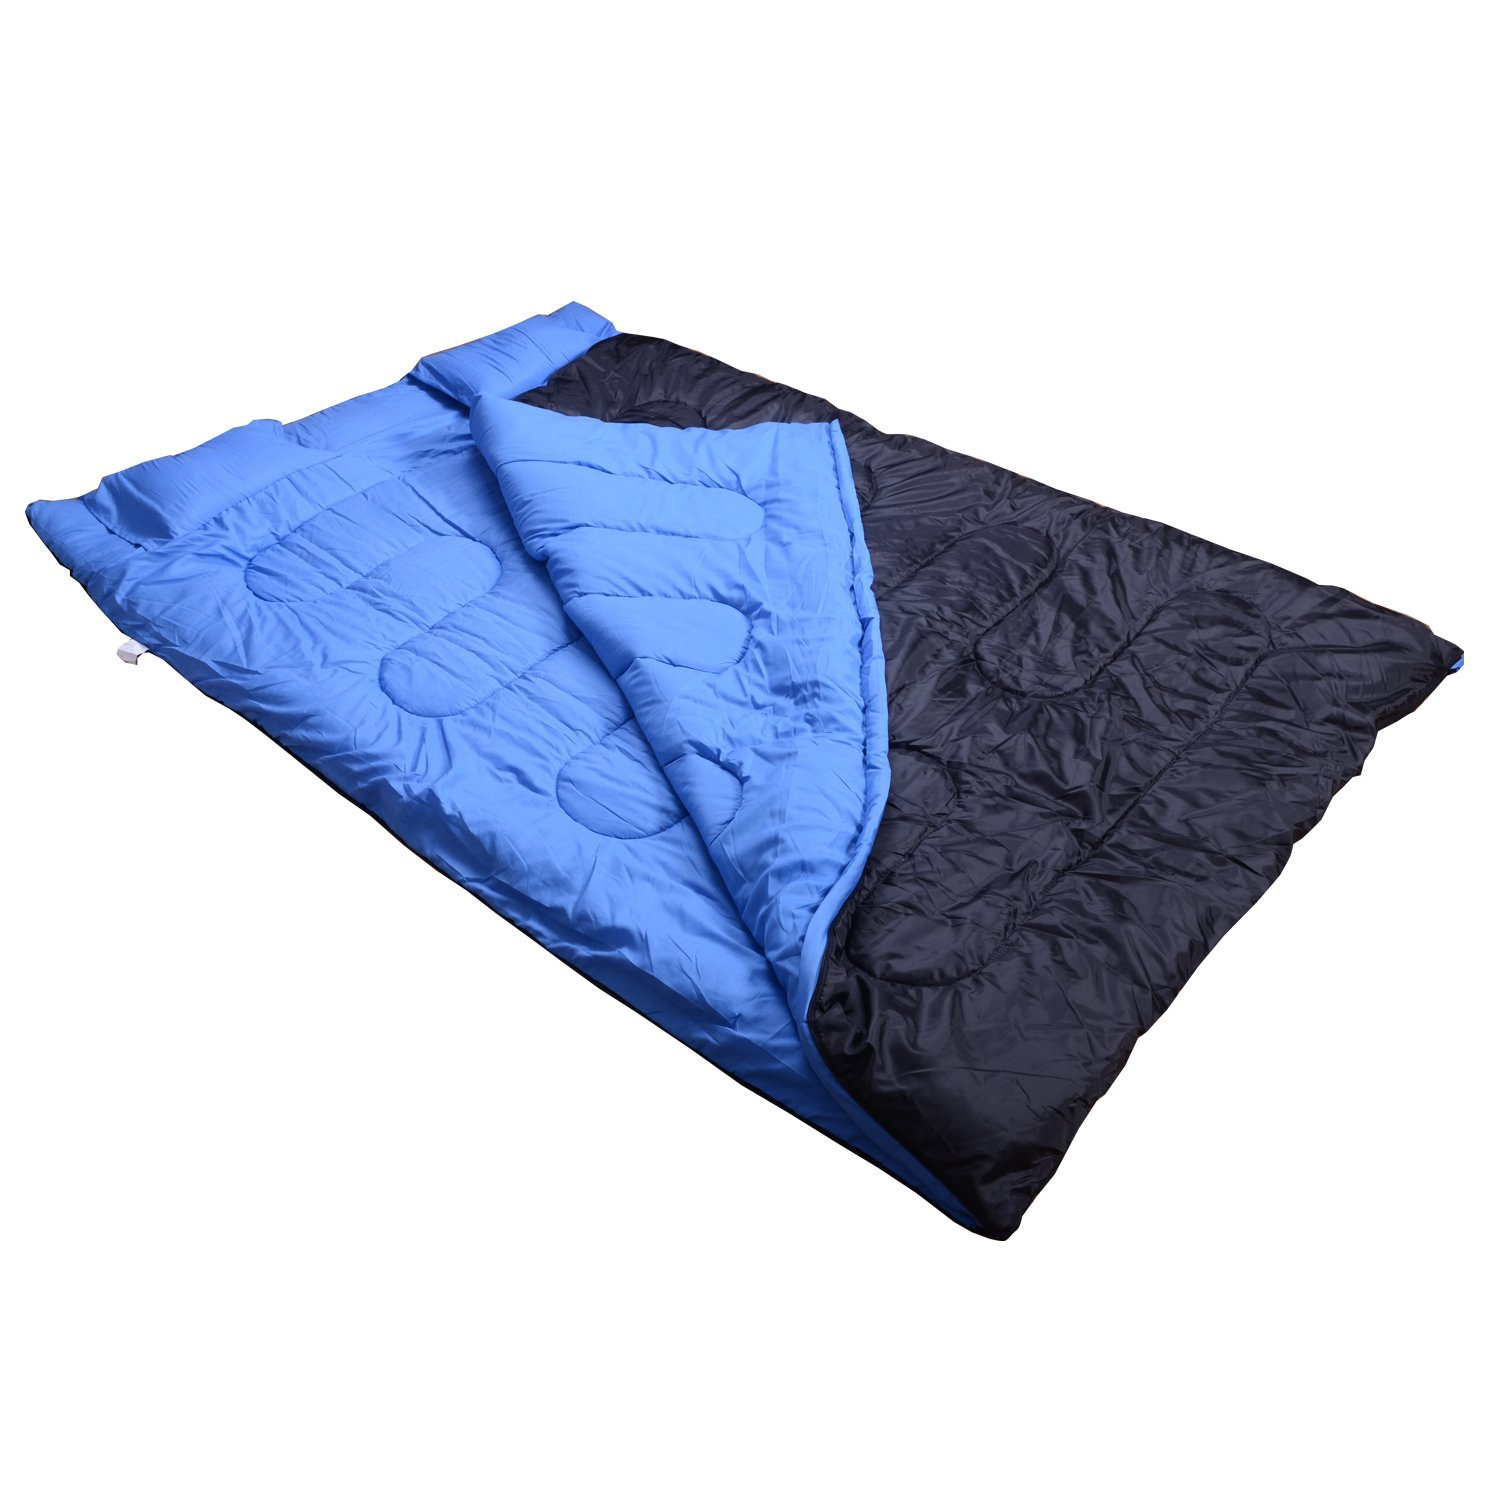 sac de couchage 2 places duvet - Les Sports eXtremes